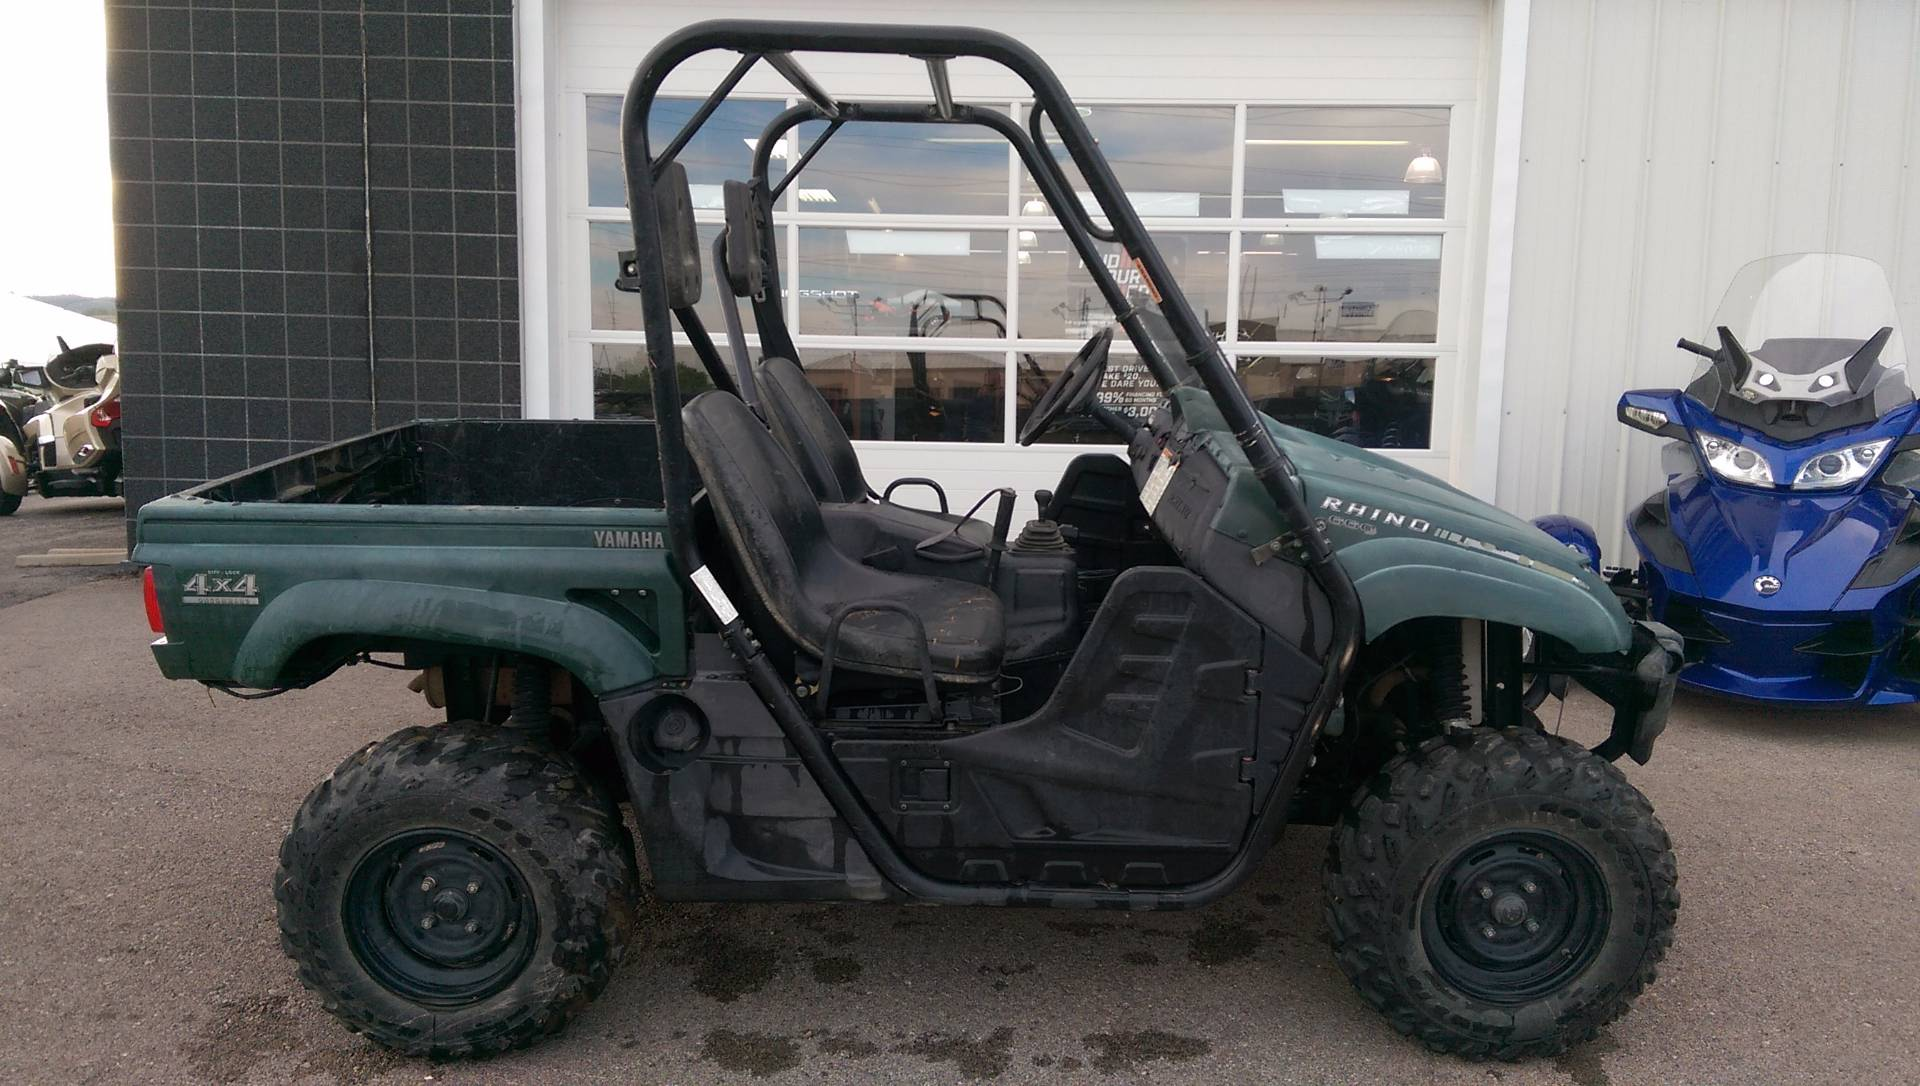 2004 yamaha rhino 660 4x4 for sale rapid city sd 54735 for 2004 yamaha grizzly 660 value